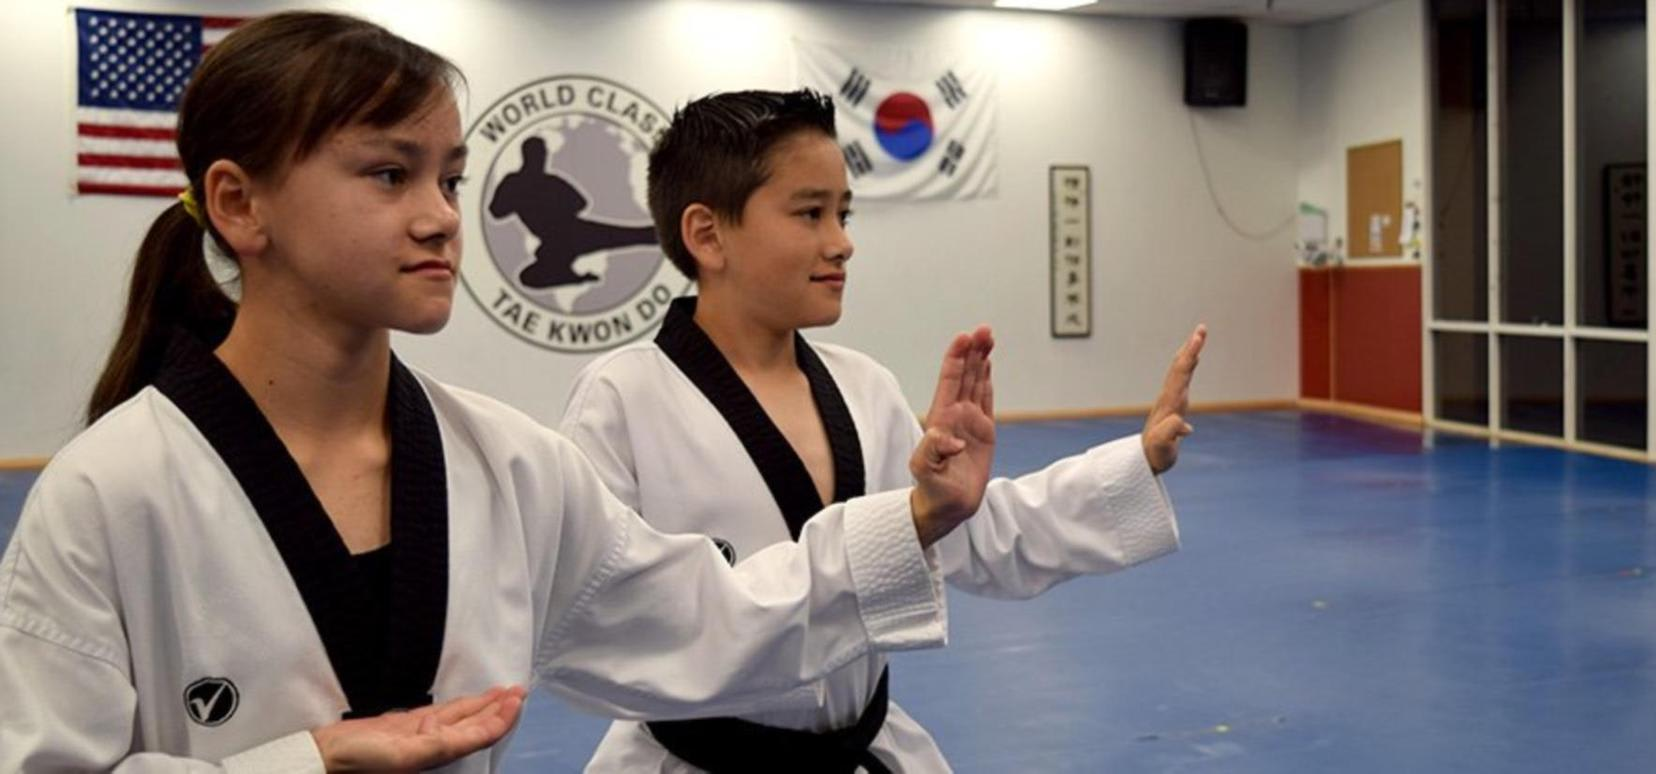 Teaching the Highest Quality Martial Arts in San Jose